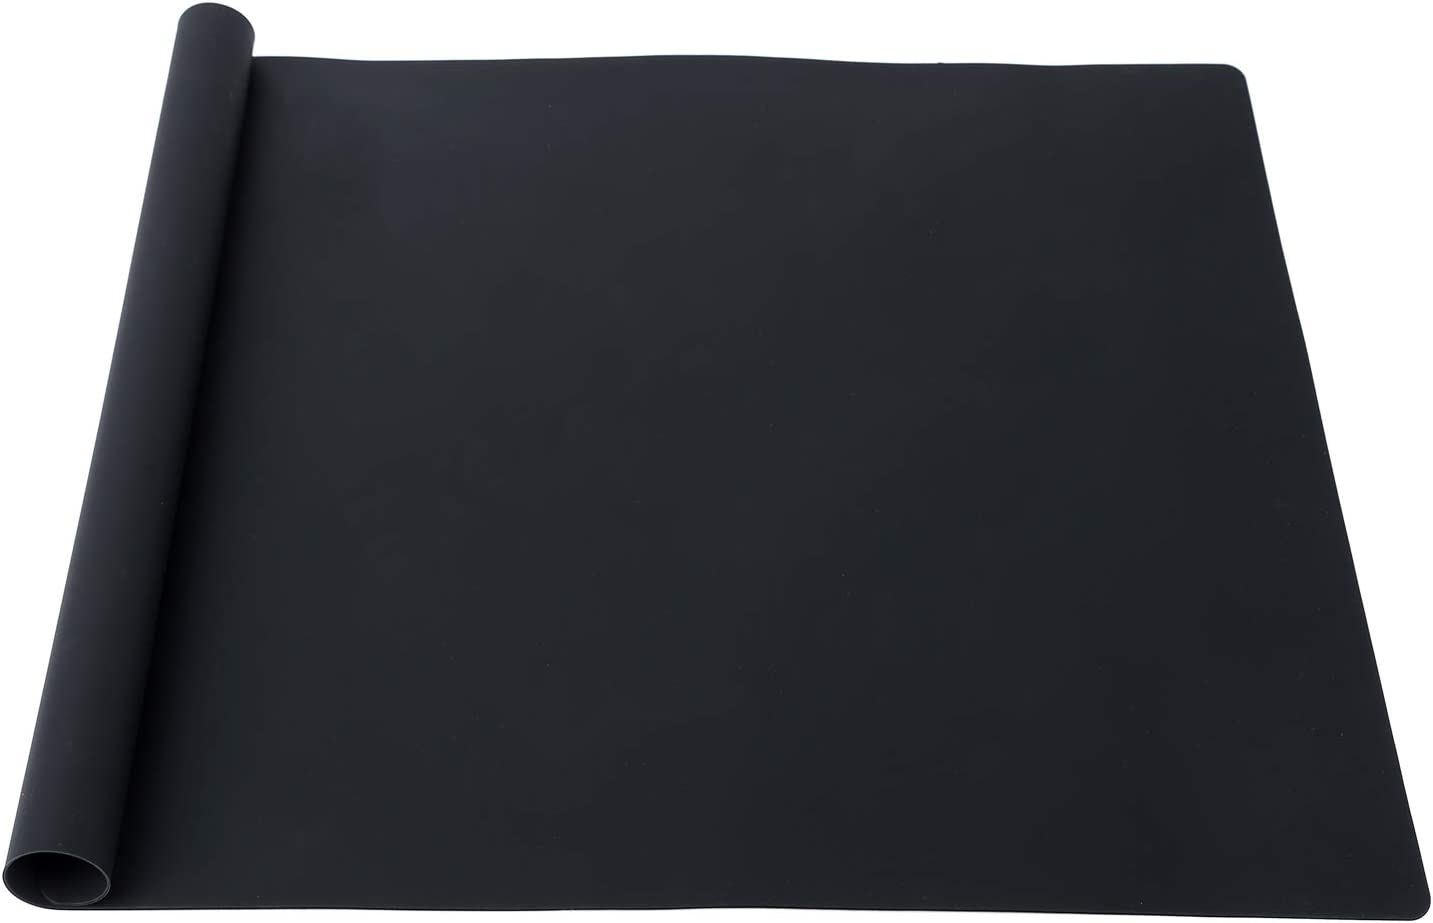 KimTin Extra Large Multipurpose Silicone Nonstick Pastry Mat, Countertop Protector Clay Mat No-slip Non Stick,Heat Resistant Table Mat, 23.6''15.75'' (Black)